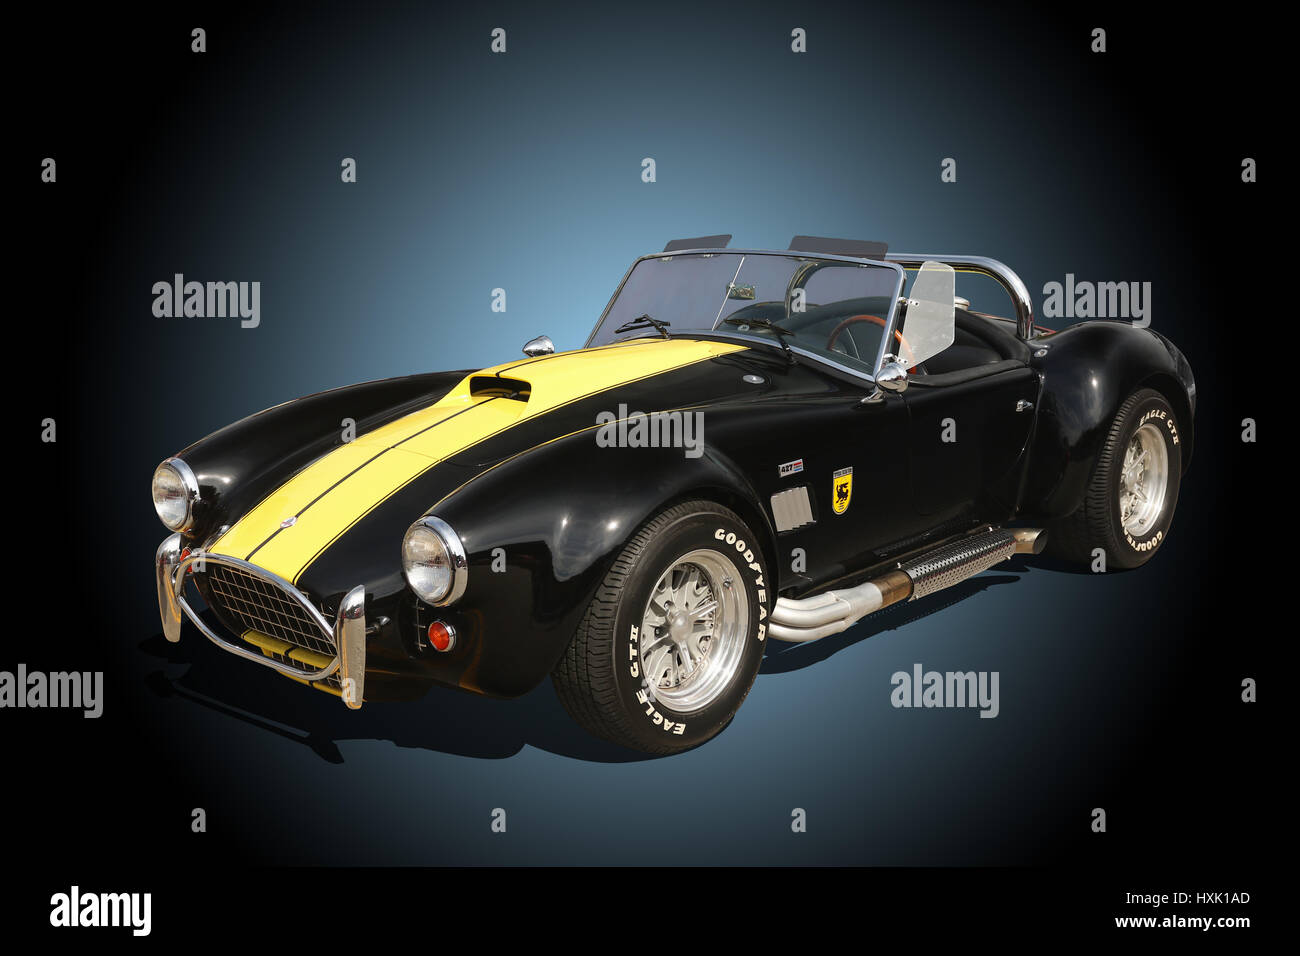 Ford shelby cobra 427 black with yellow